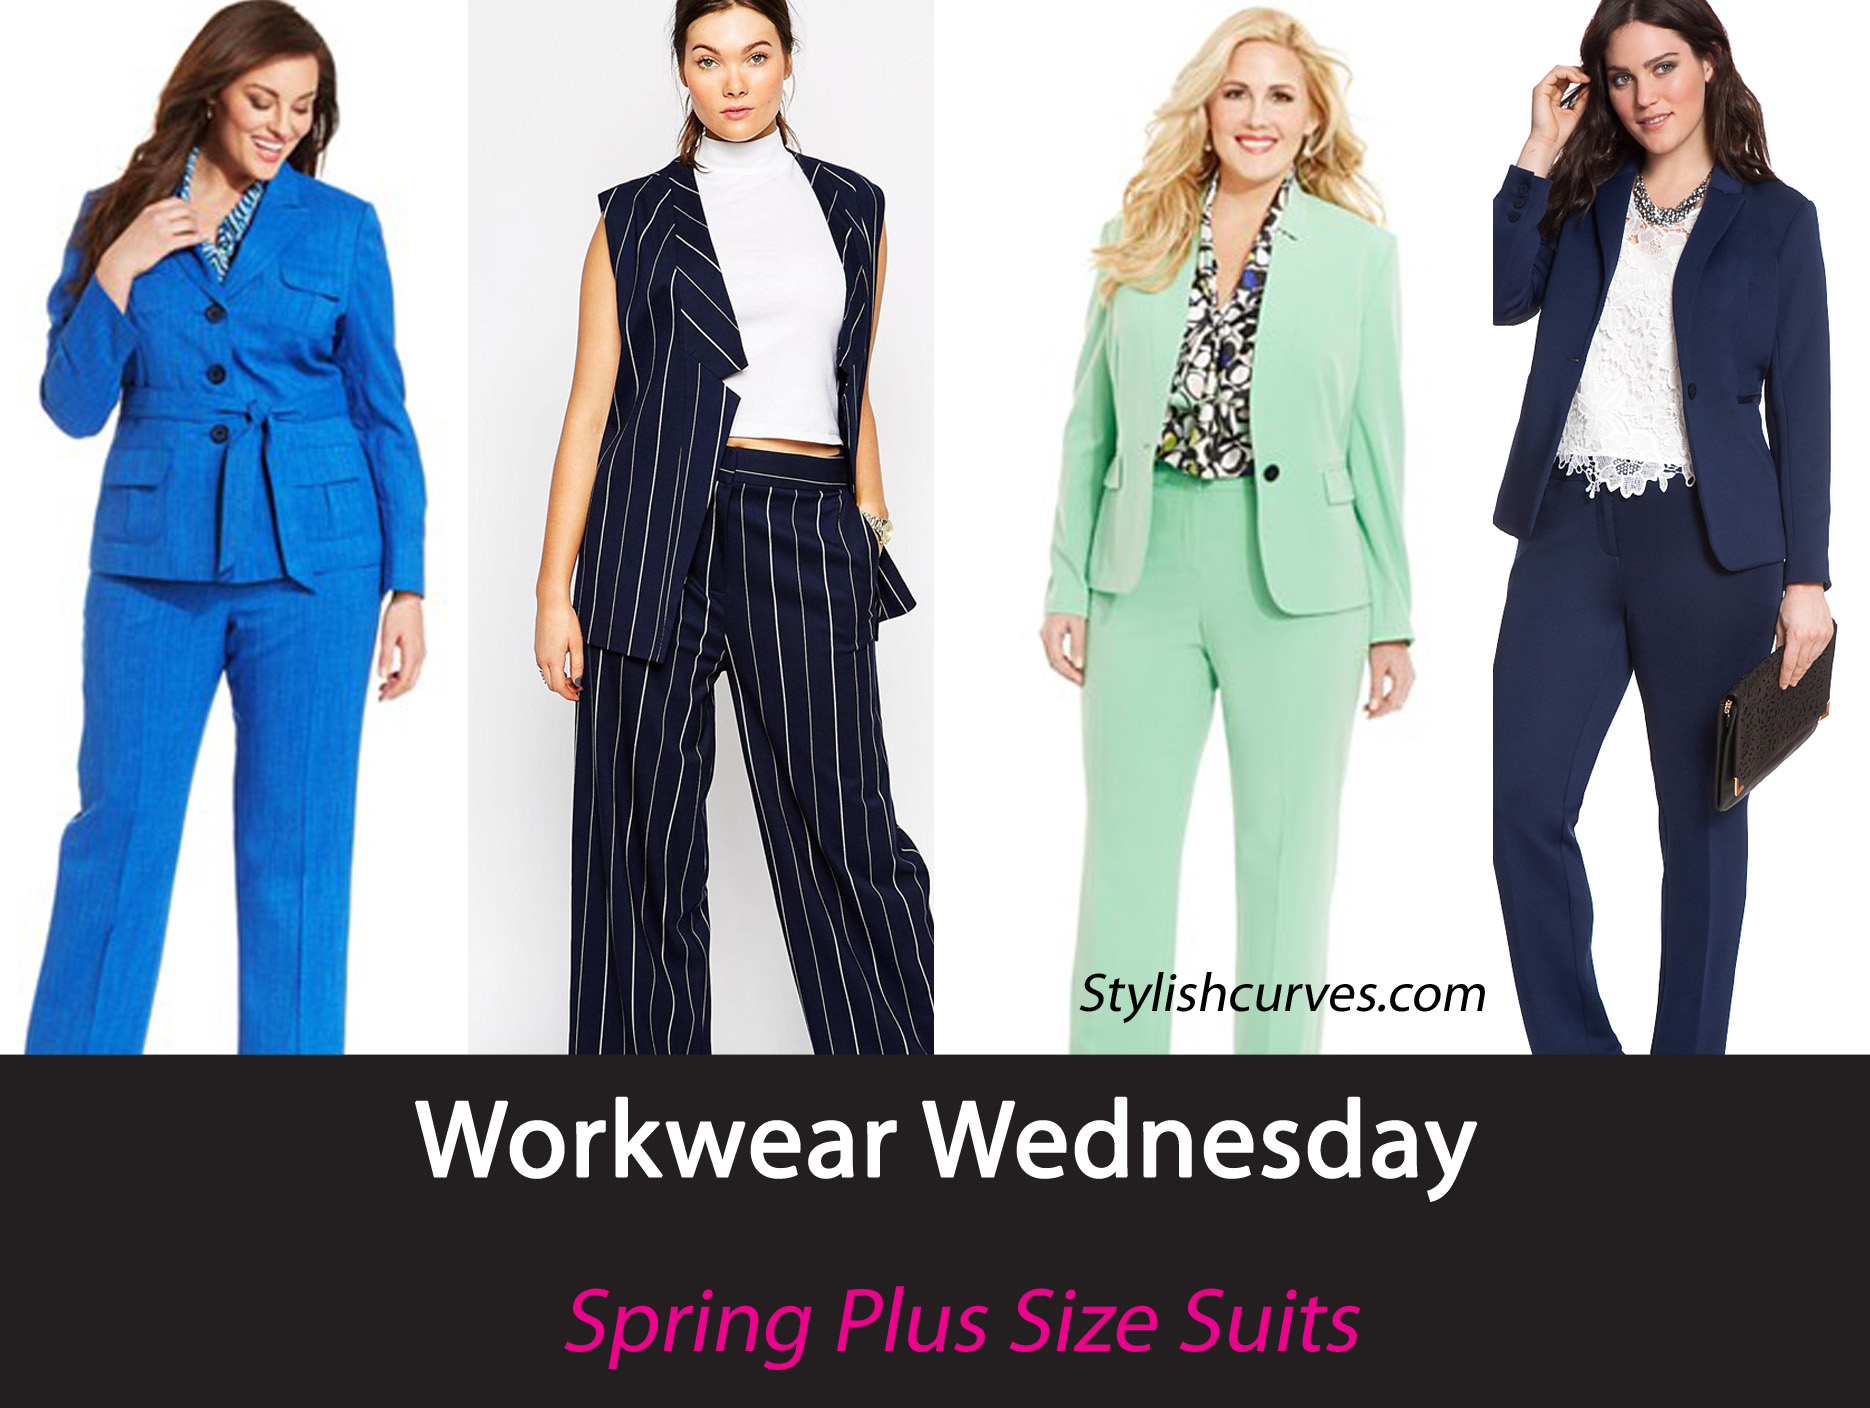 No More Boring Black Suits,Turn Up Your Office Style With These Chic Spring Plus Size Pant Suits